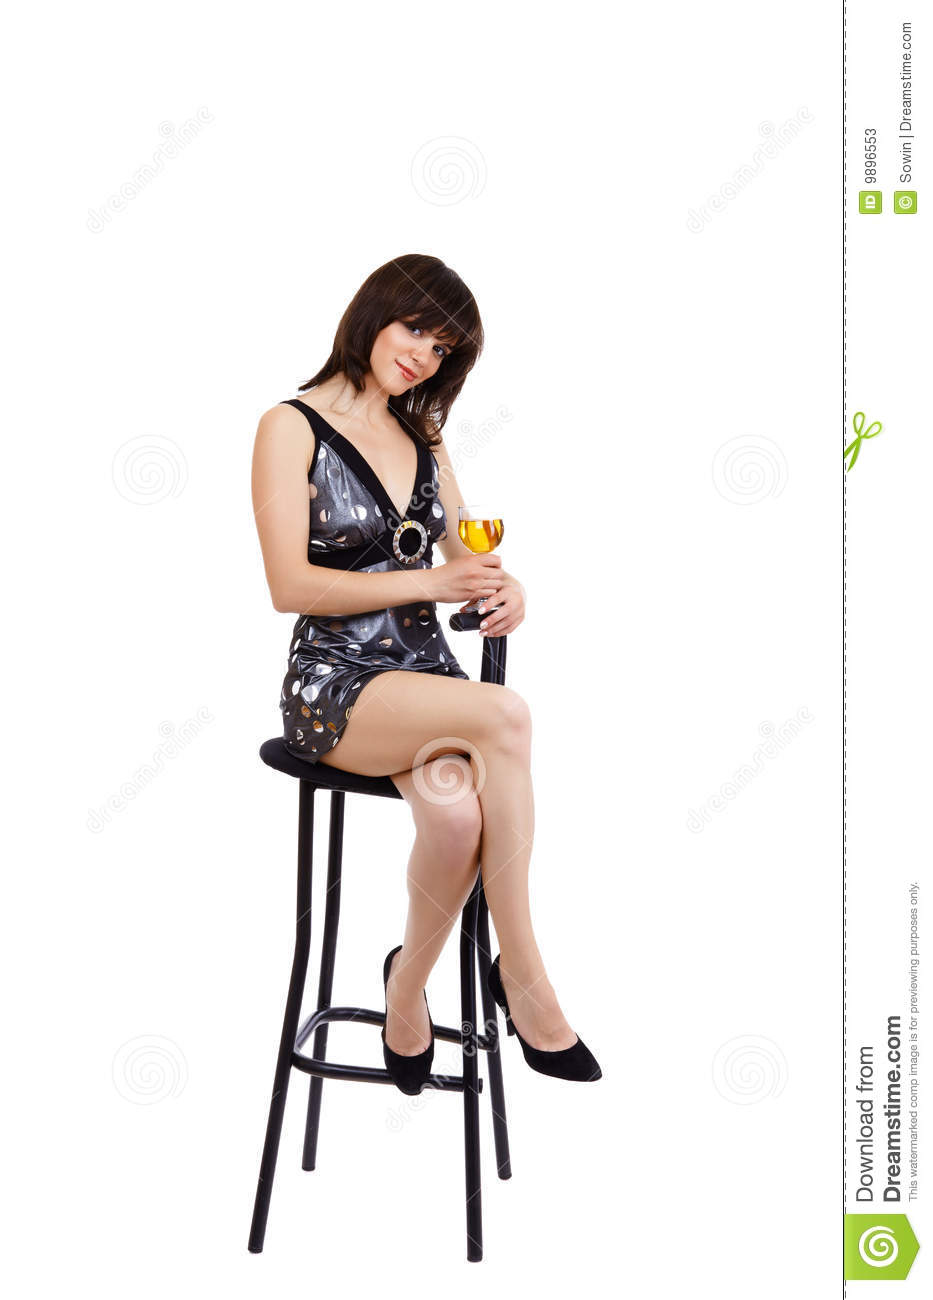 The sexual girl sits on a bar chair